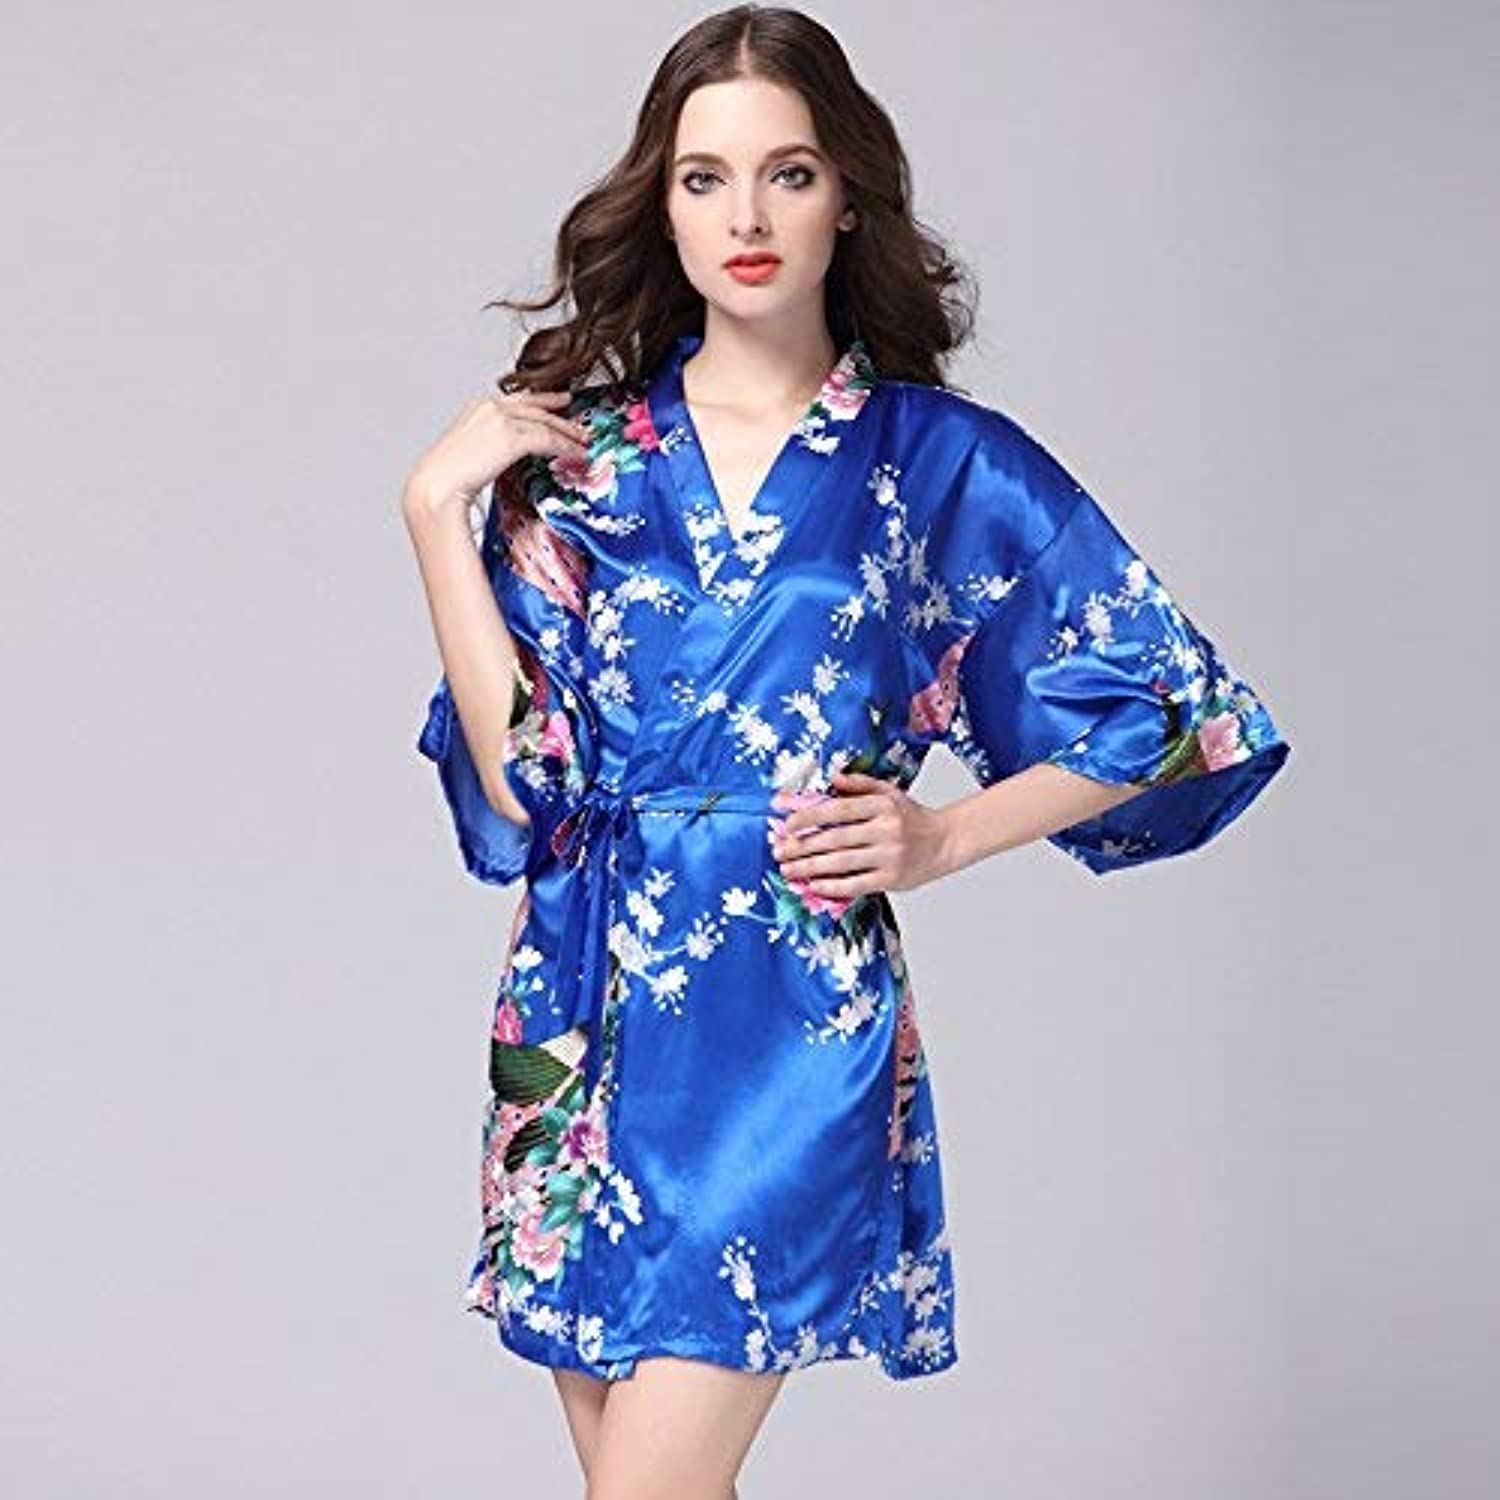 Nightshirt, Simulation Silk Nightgown Ladies Summer Sleeve Peacock Pajamas Bathrobe Large Size Home Service (color   Sapphire, Size   XL) (color   Sapphire, Size   XLarge)